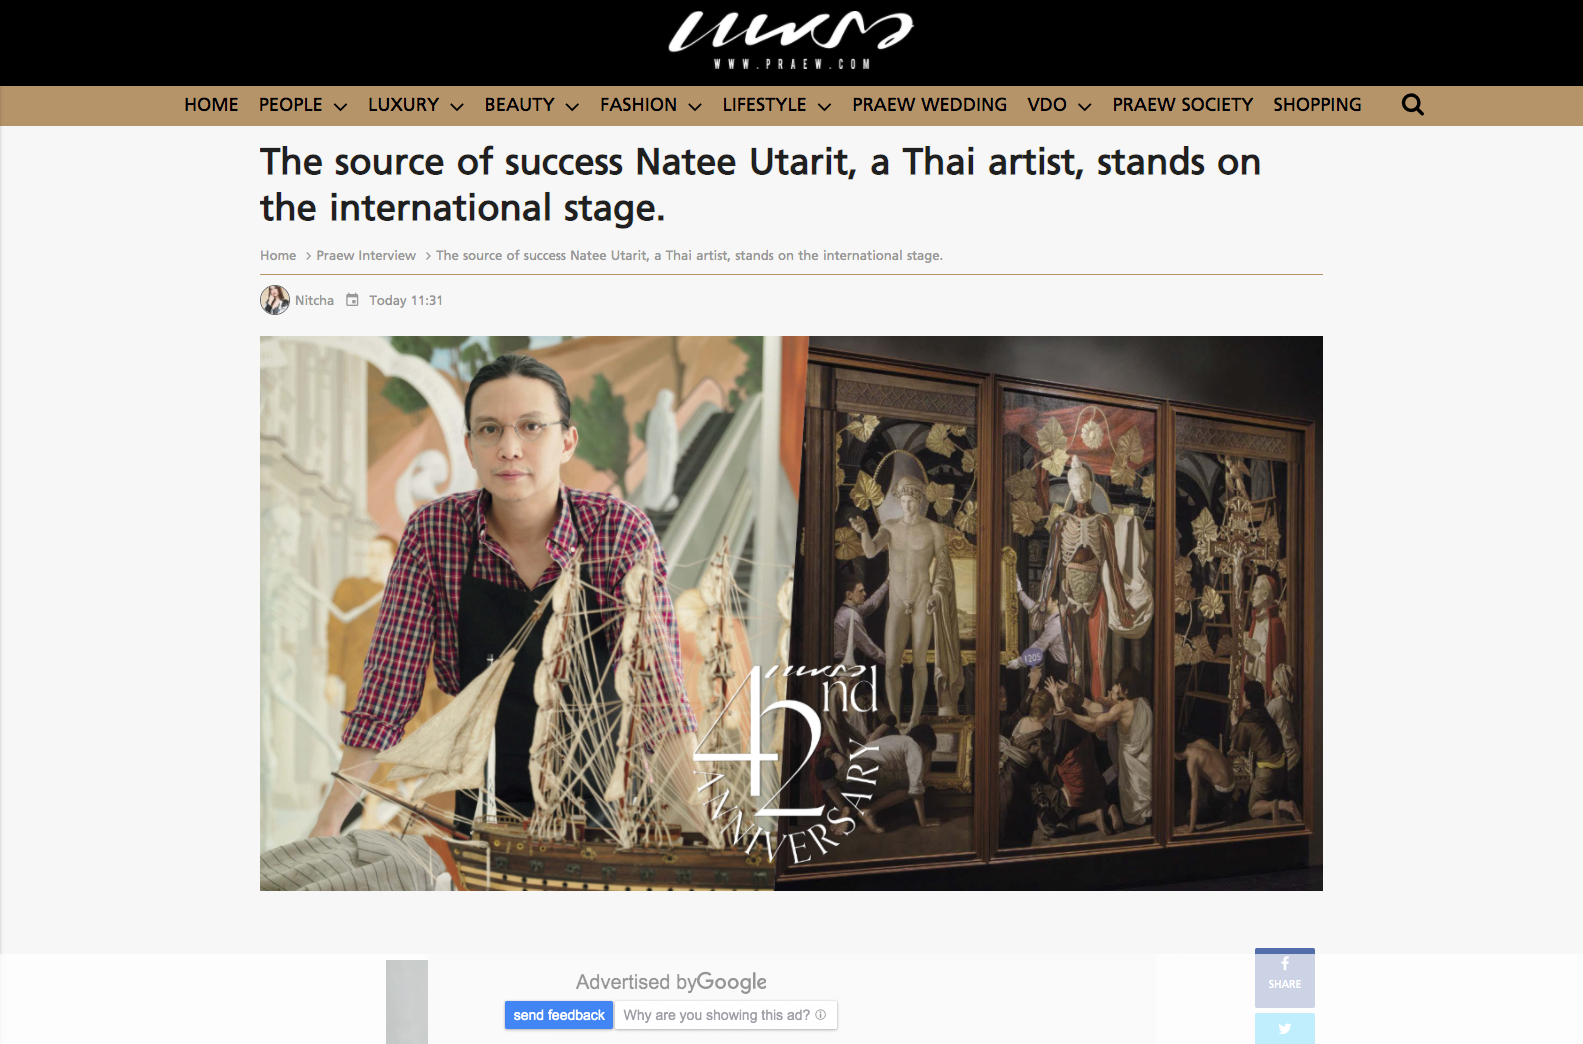 Praew – The source of success Natee Utarit, a Thai artist, stands on the international stage